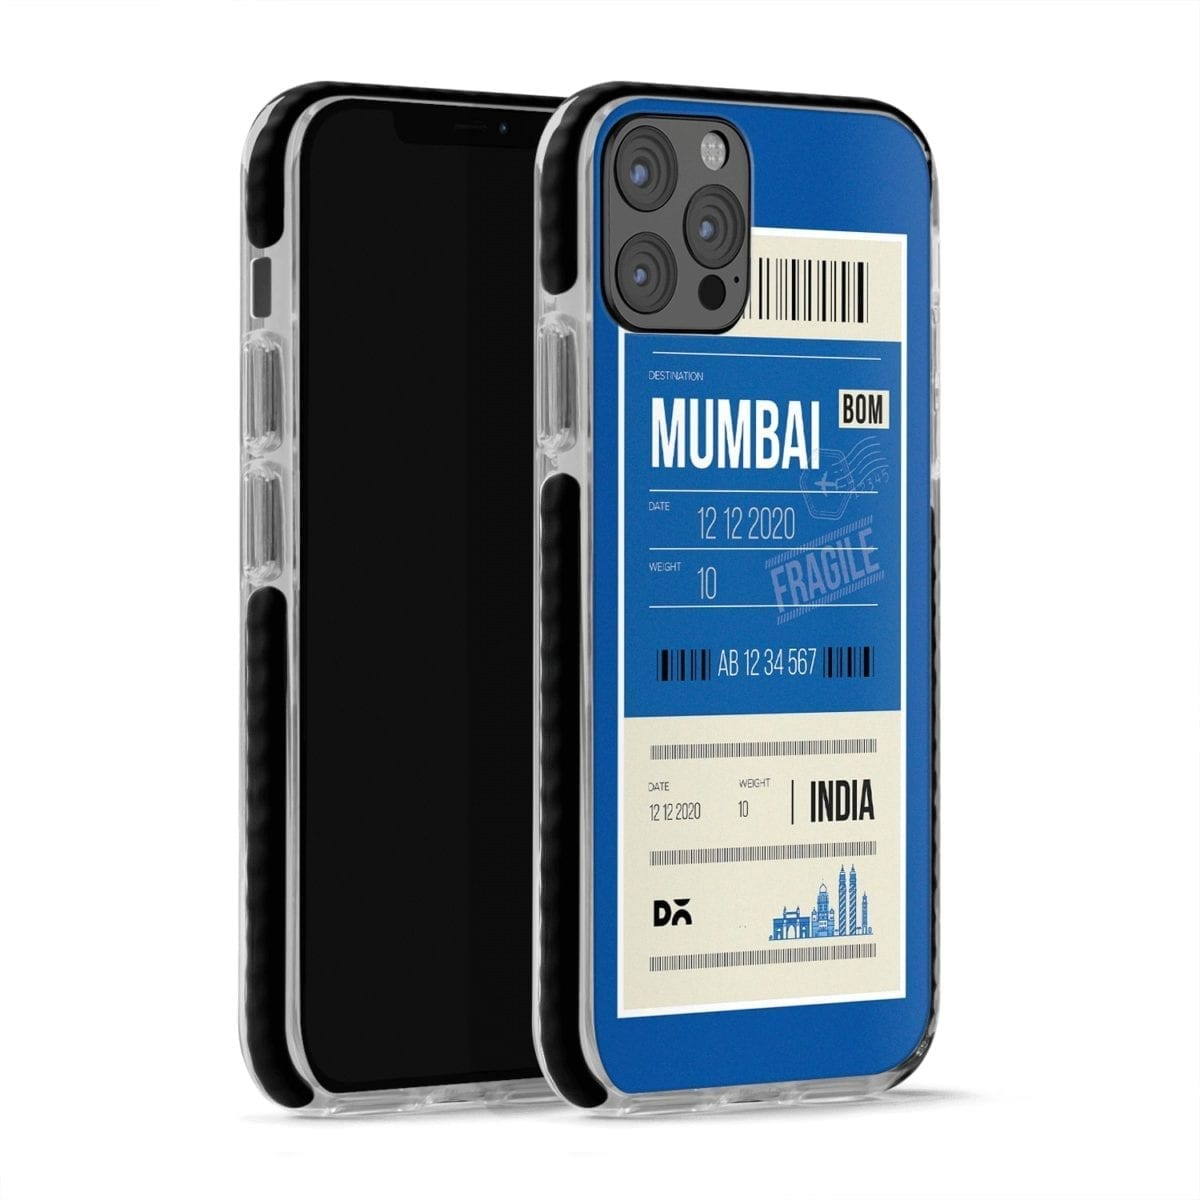 Mumbai City Tag Checks Stride Case Cover for Apple iPhone 12 Pro and Apple iPhone 12 Pro Max with great design and shock proof | Klippik | Online Shopping | Kuwait UAE Saudi